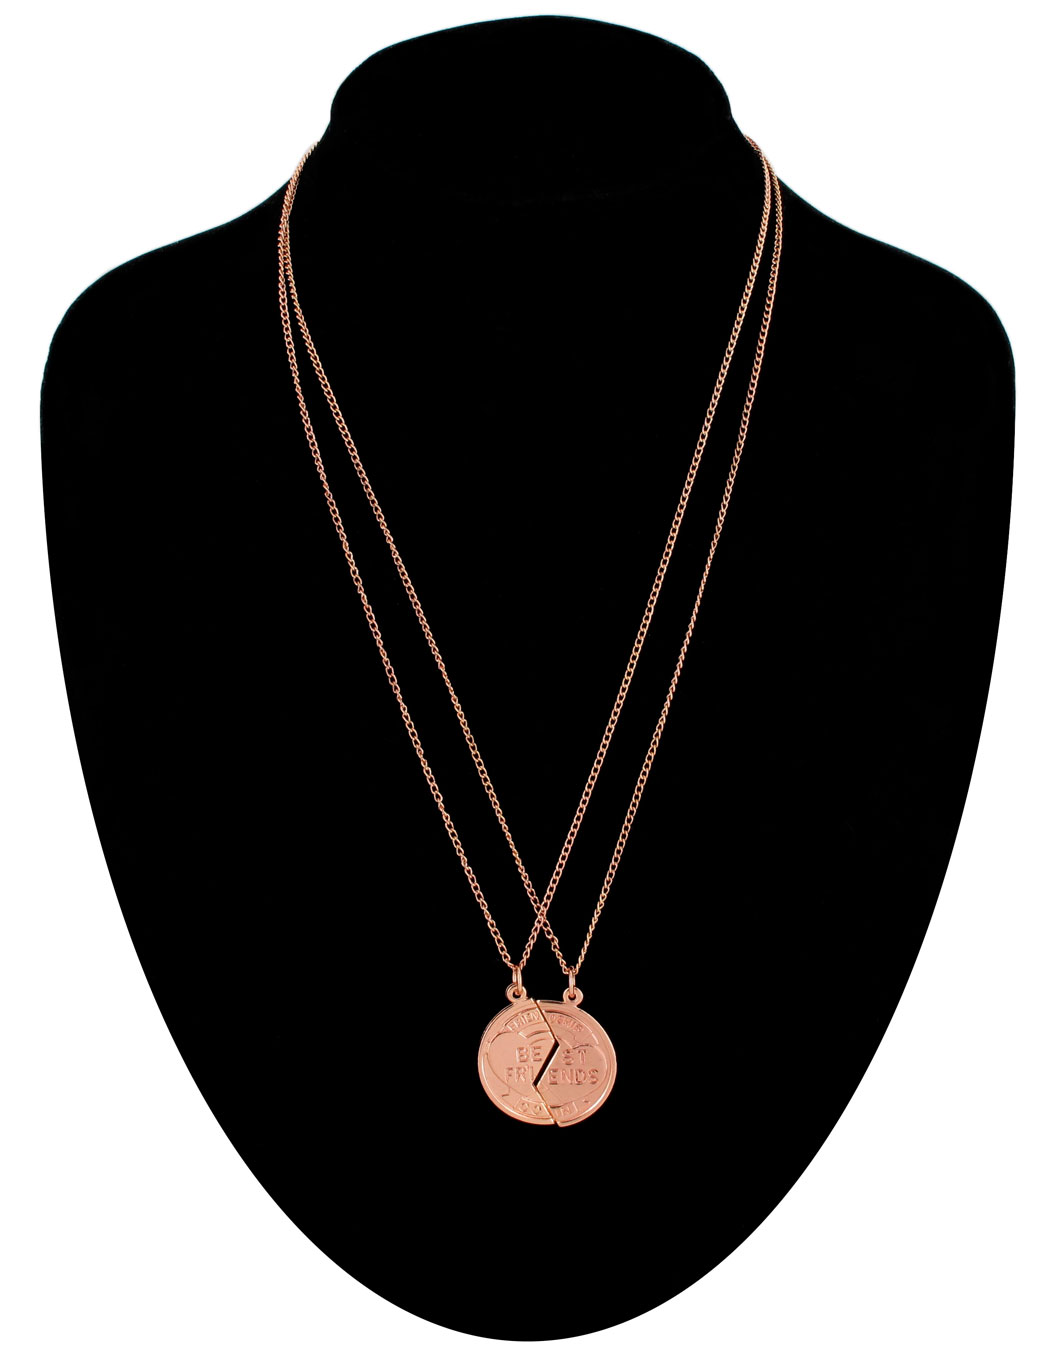 Ky & Co Pendant Bff Necklace Set Broken Coin Best Friends Rose Gold Tone